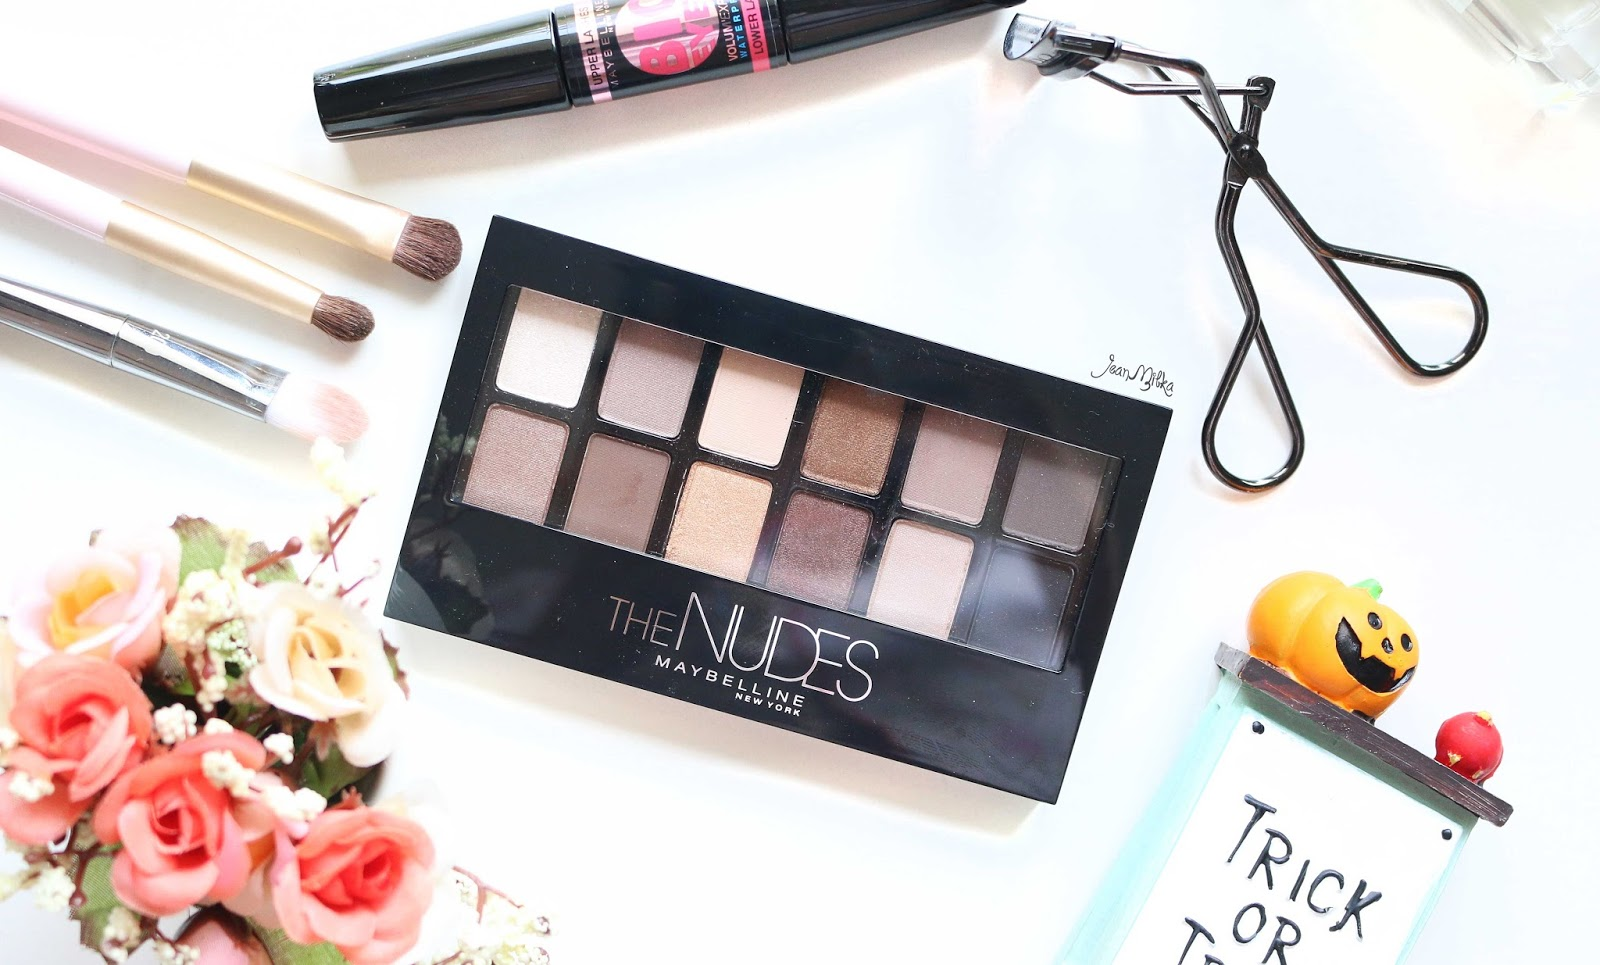 maybelline, the nudes, palette, eyeshadow, review, swatch, drugstore, maybelline the nudes, eyeshadow palette, beauty, makeup